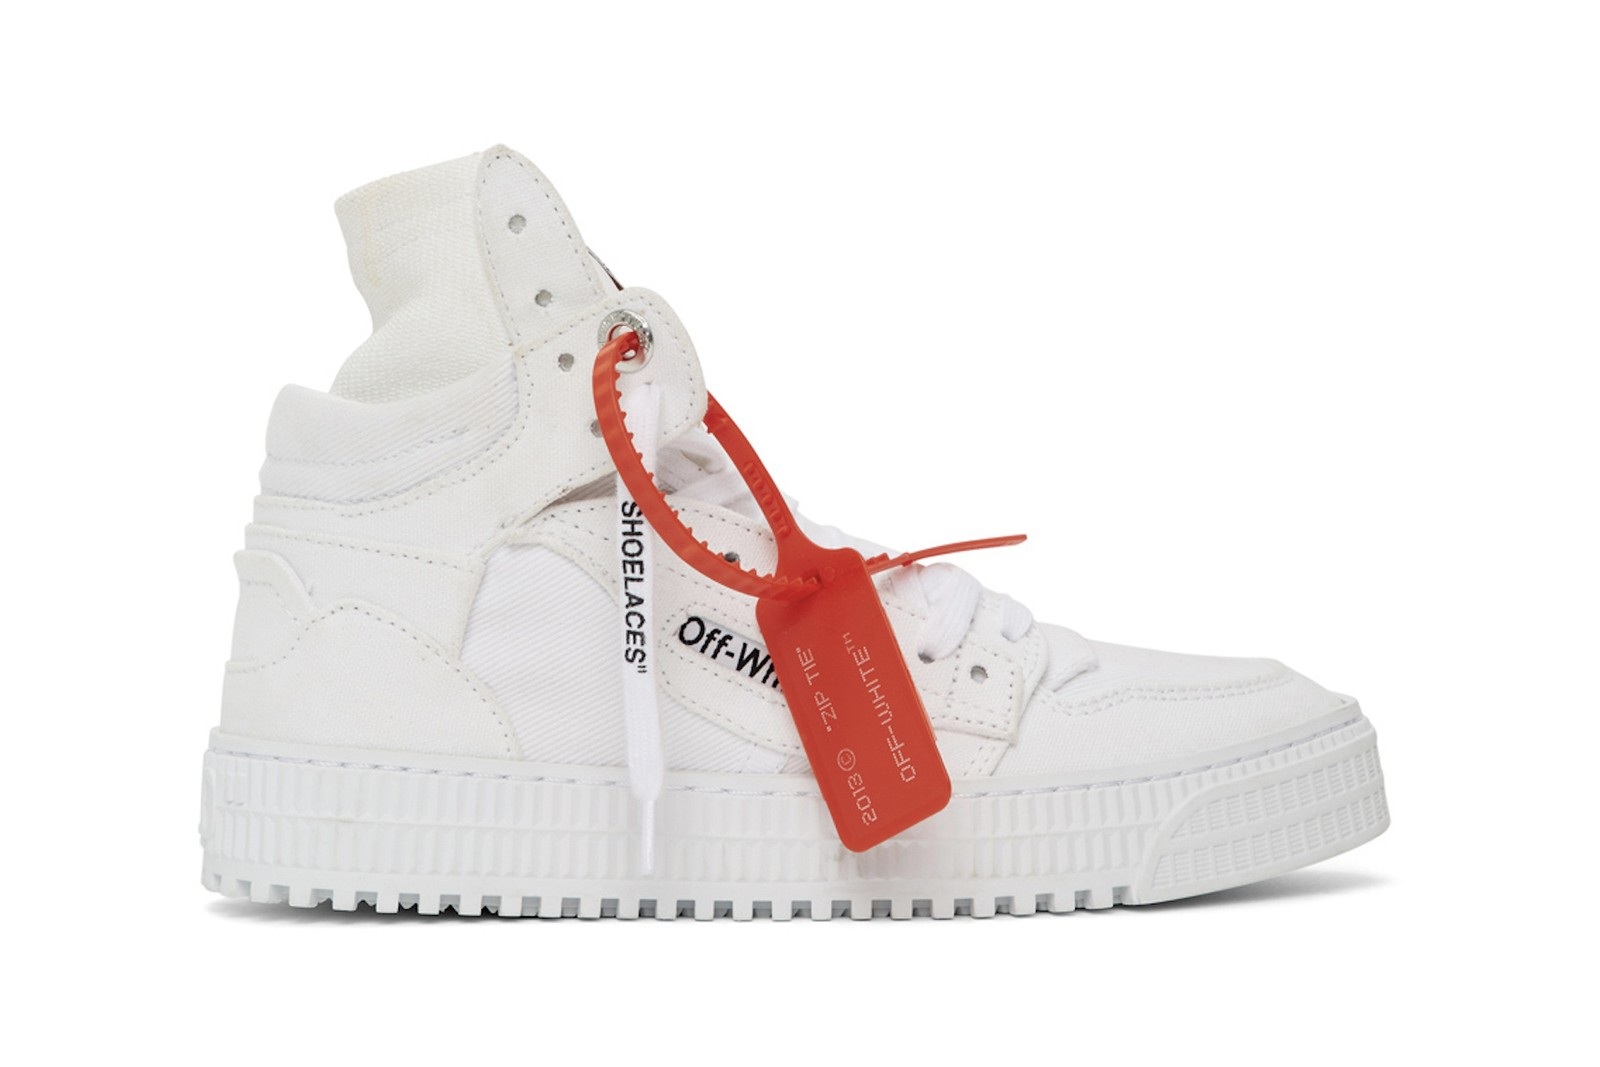 Best White Sneakers for Summer Nike adidas Eytys Common Projects Off-White adidas yung 96 nike air max 97 cortez converse chuck 70